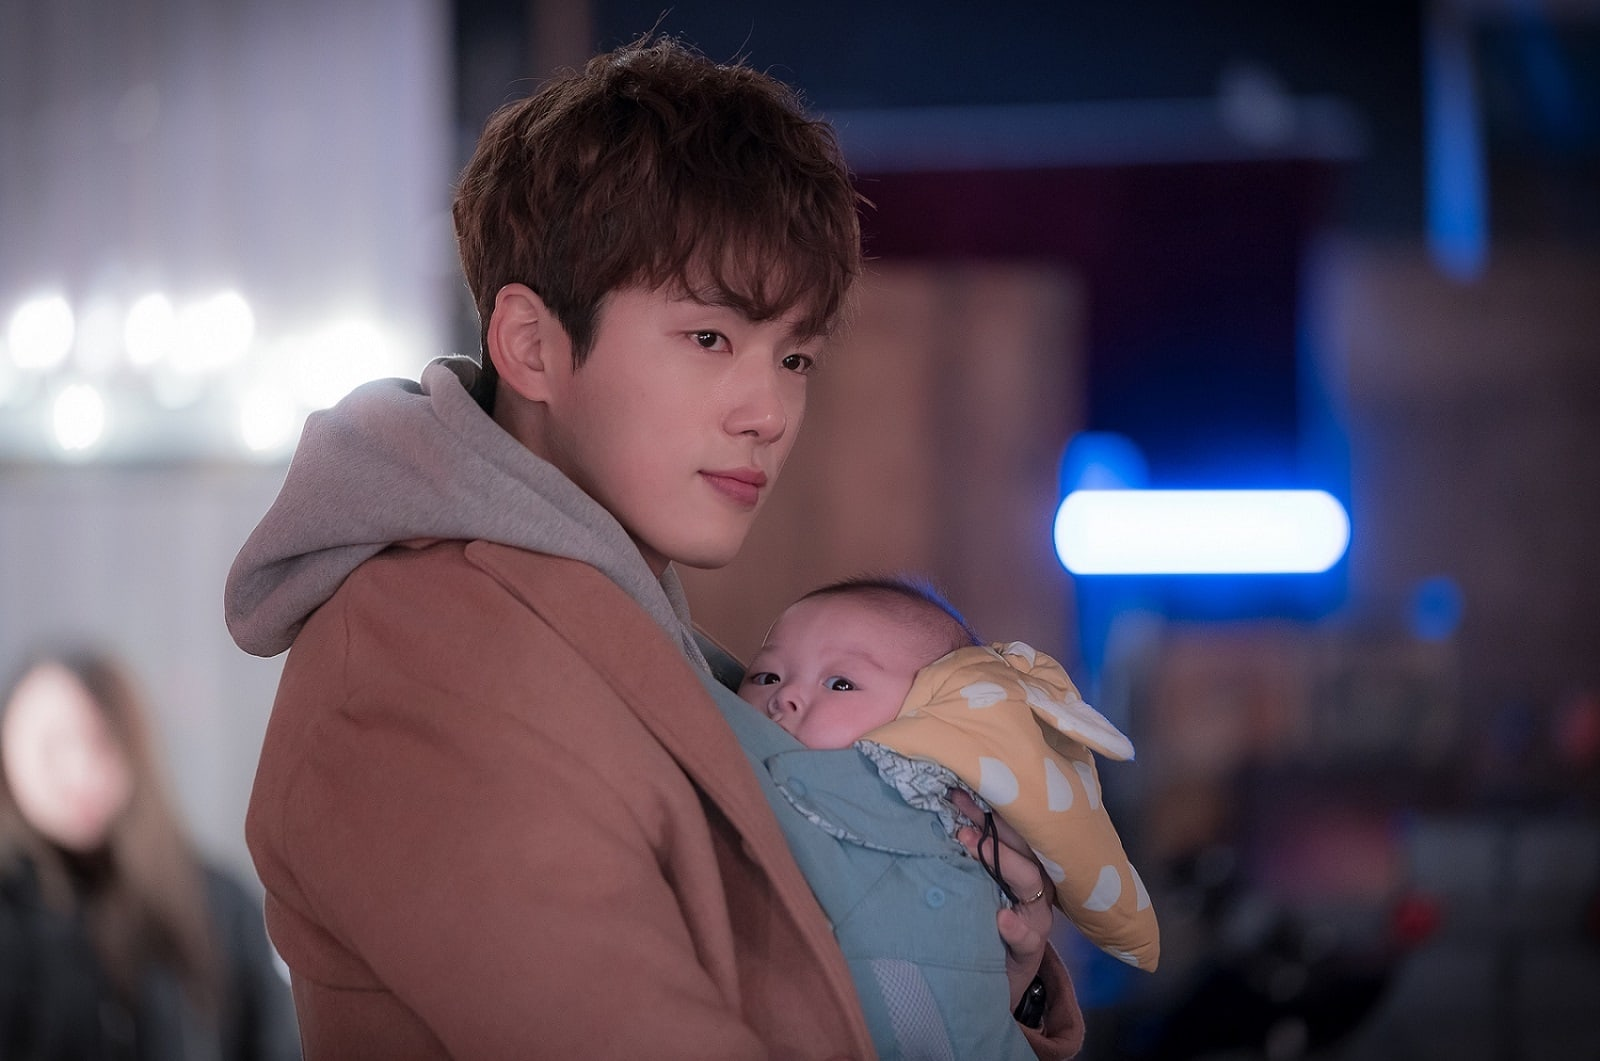 Kim Jung Hyun Finds Himself In An Unexpected Situation In 1st Look At Upcoming Youth Drama